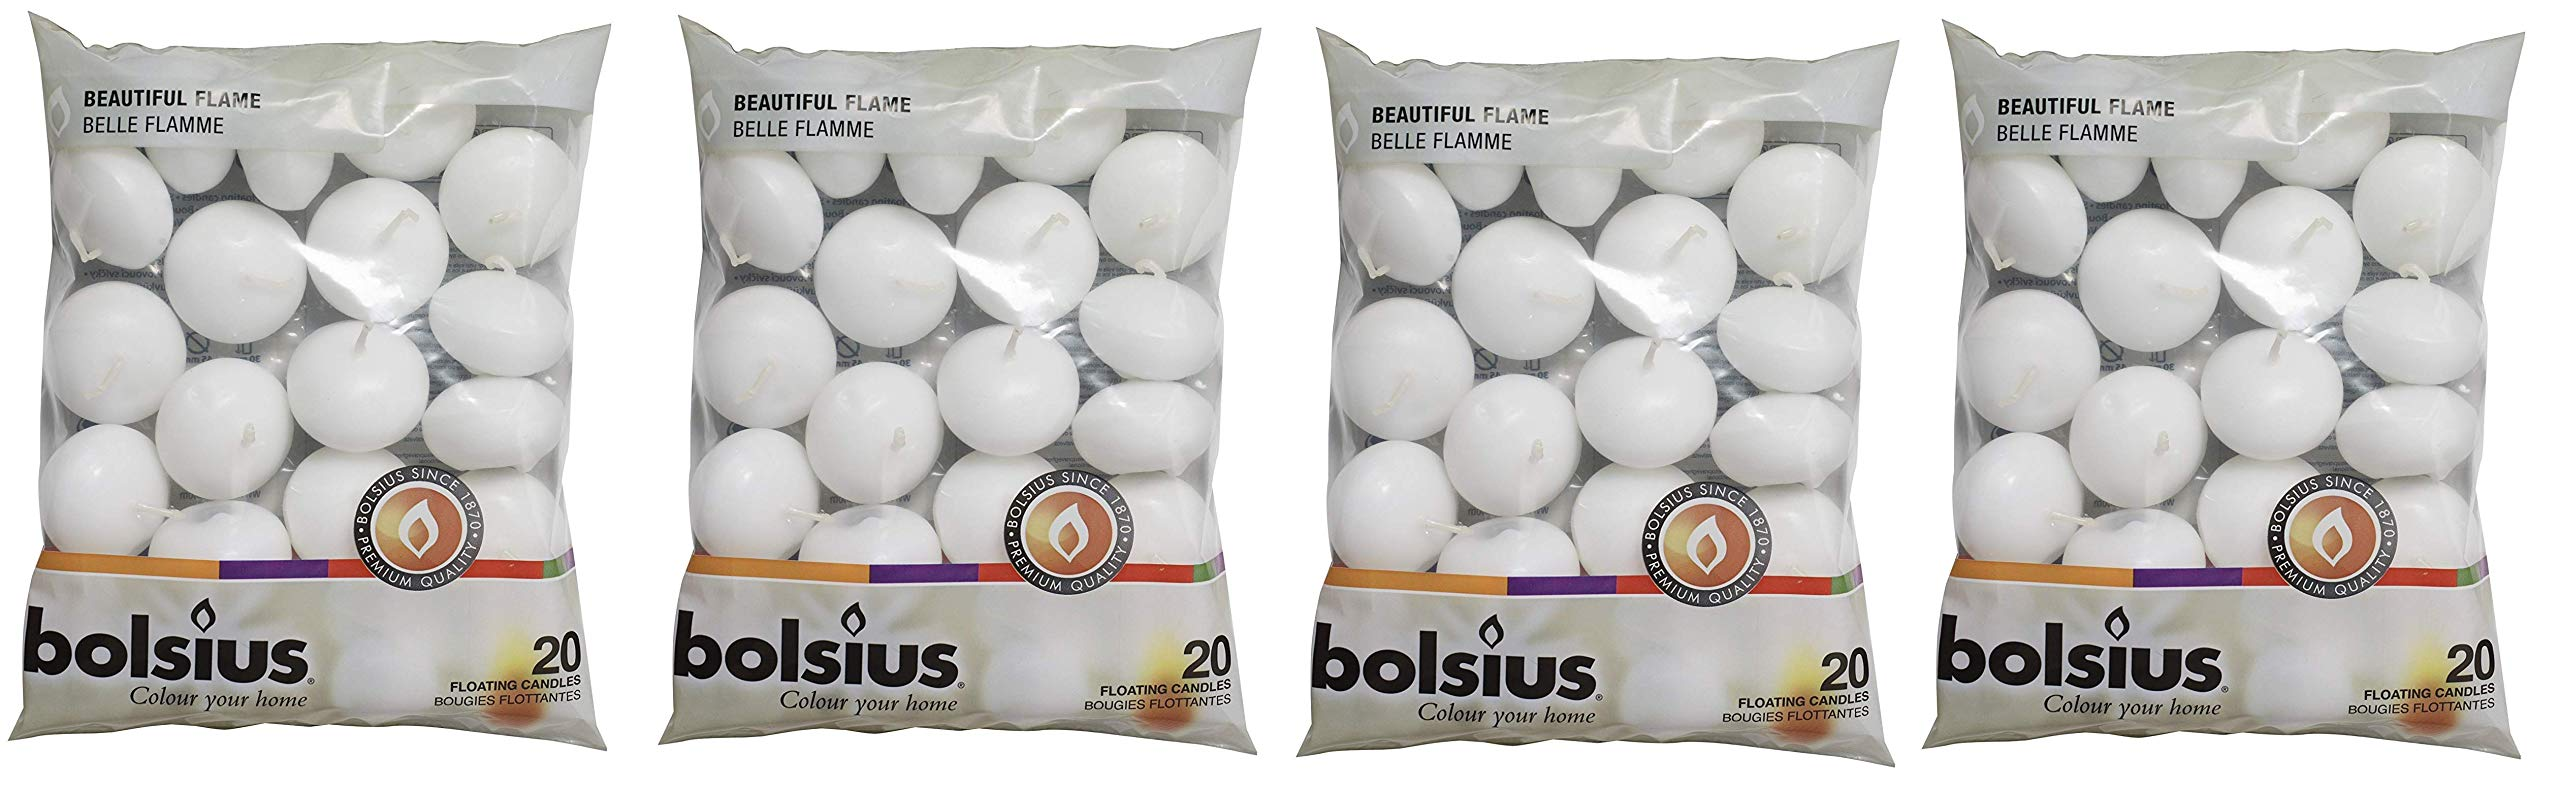 BOLSIUS Unscented Floating Candles – Set of 20 White Floating Candles – Cute and Elegant Burning Candles – Candles with Nice and Smooth Flame – Party Accessories (Fоur Расk)